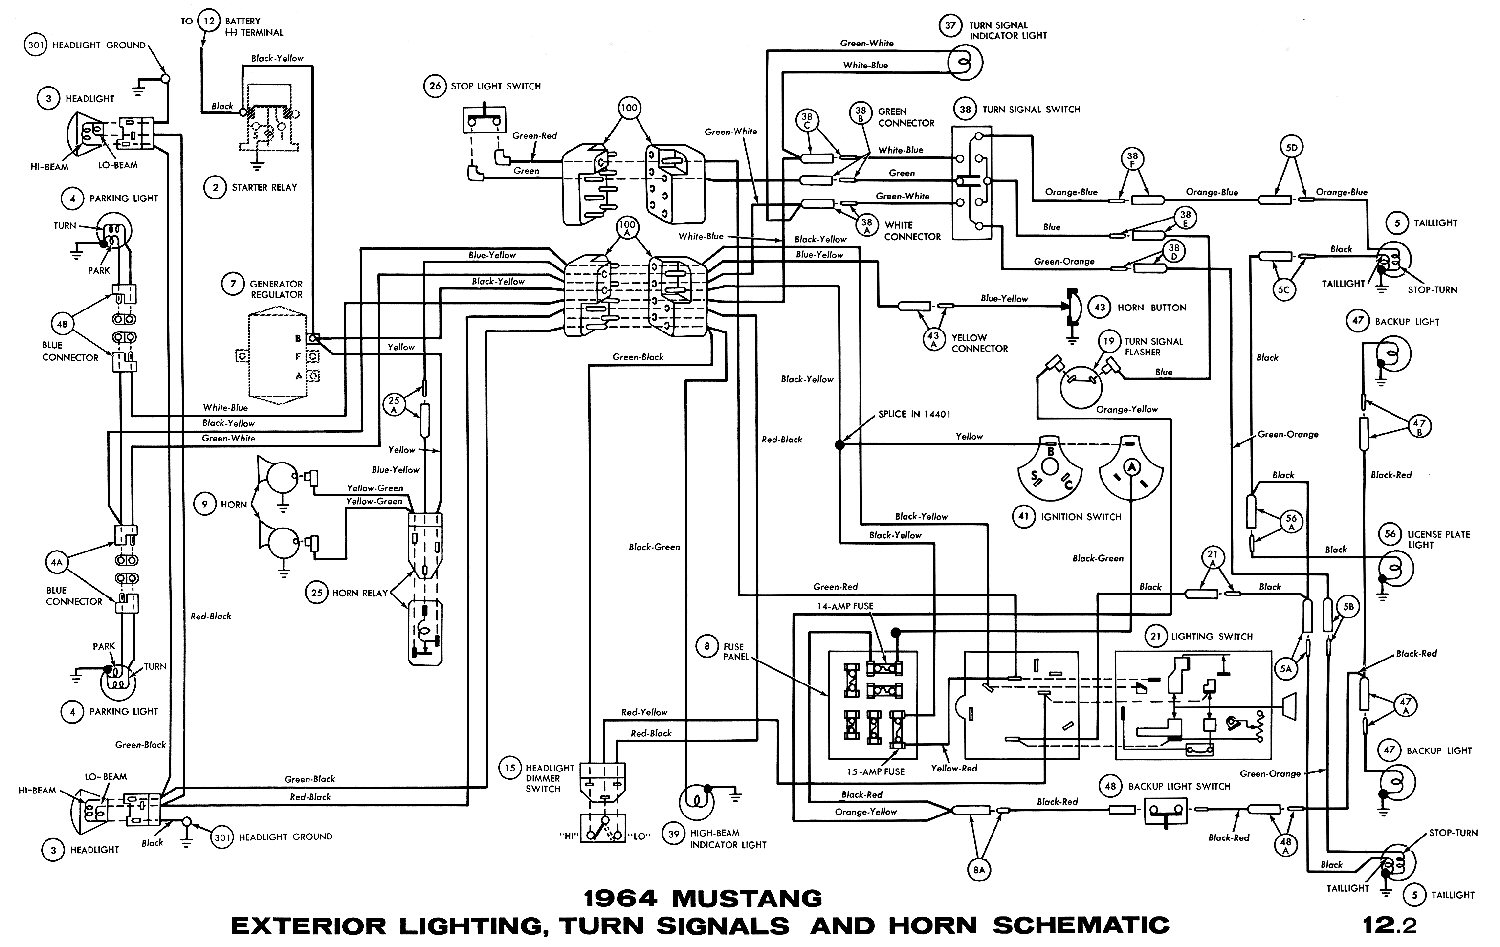 1964i 1964 mustang wiring diagrams average joe restoration 1970 mustang wiring diagram at alyssarenee.co